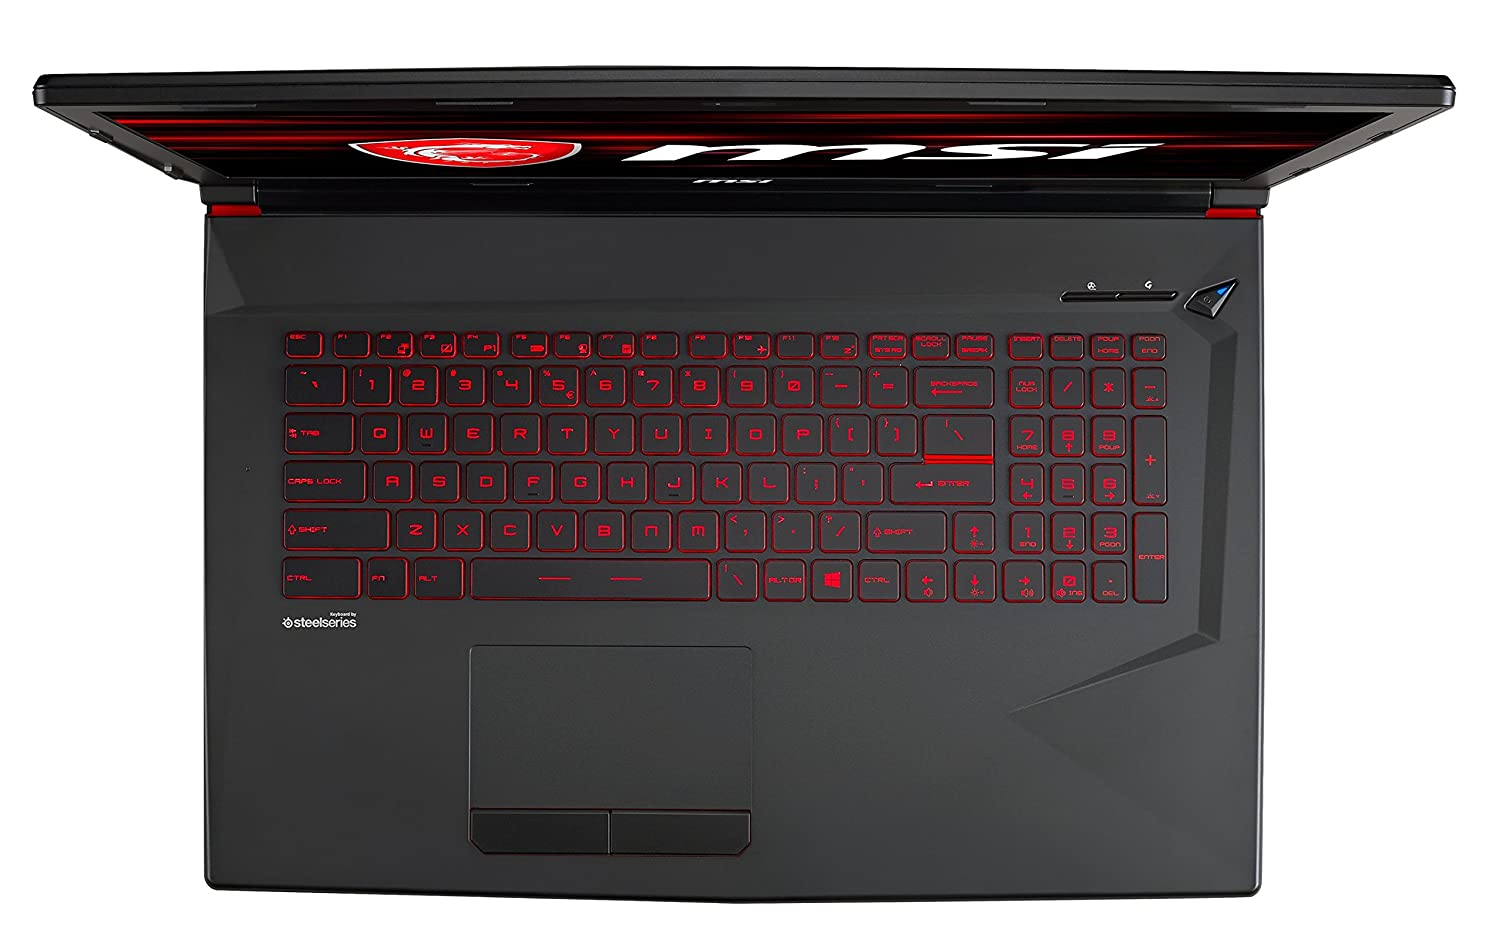 Amazon.com: MSI GL73 8RC-032 (i7-8750H, 16GB RAM, 128GB SATA SSD + 1TB HDD, NVIDIA GTX 1050 4GB, 17.3